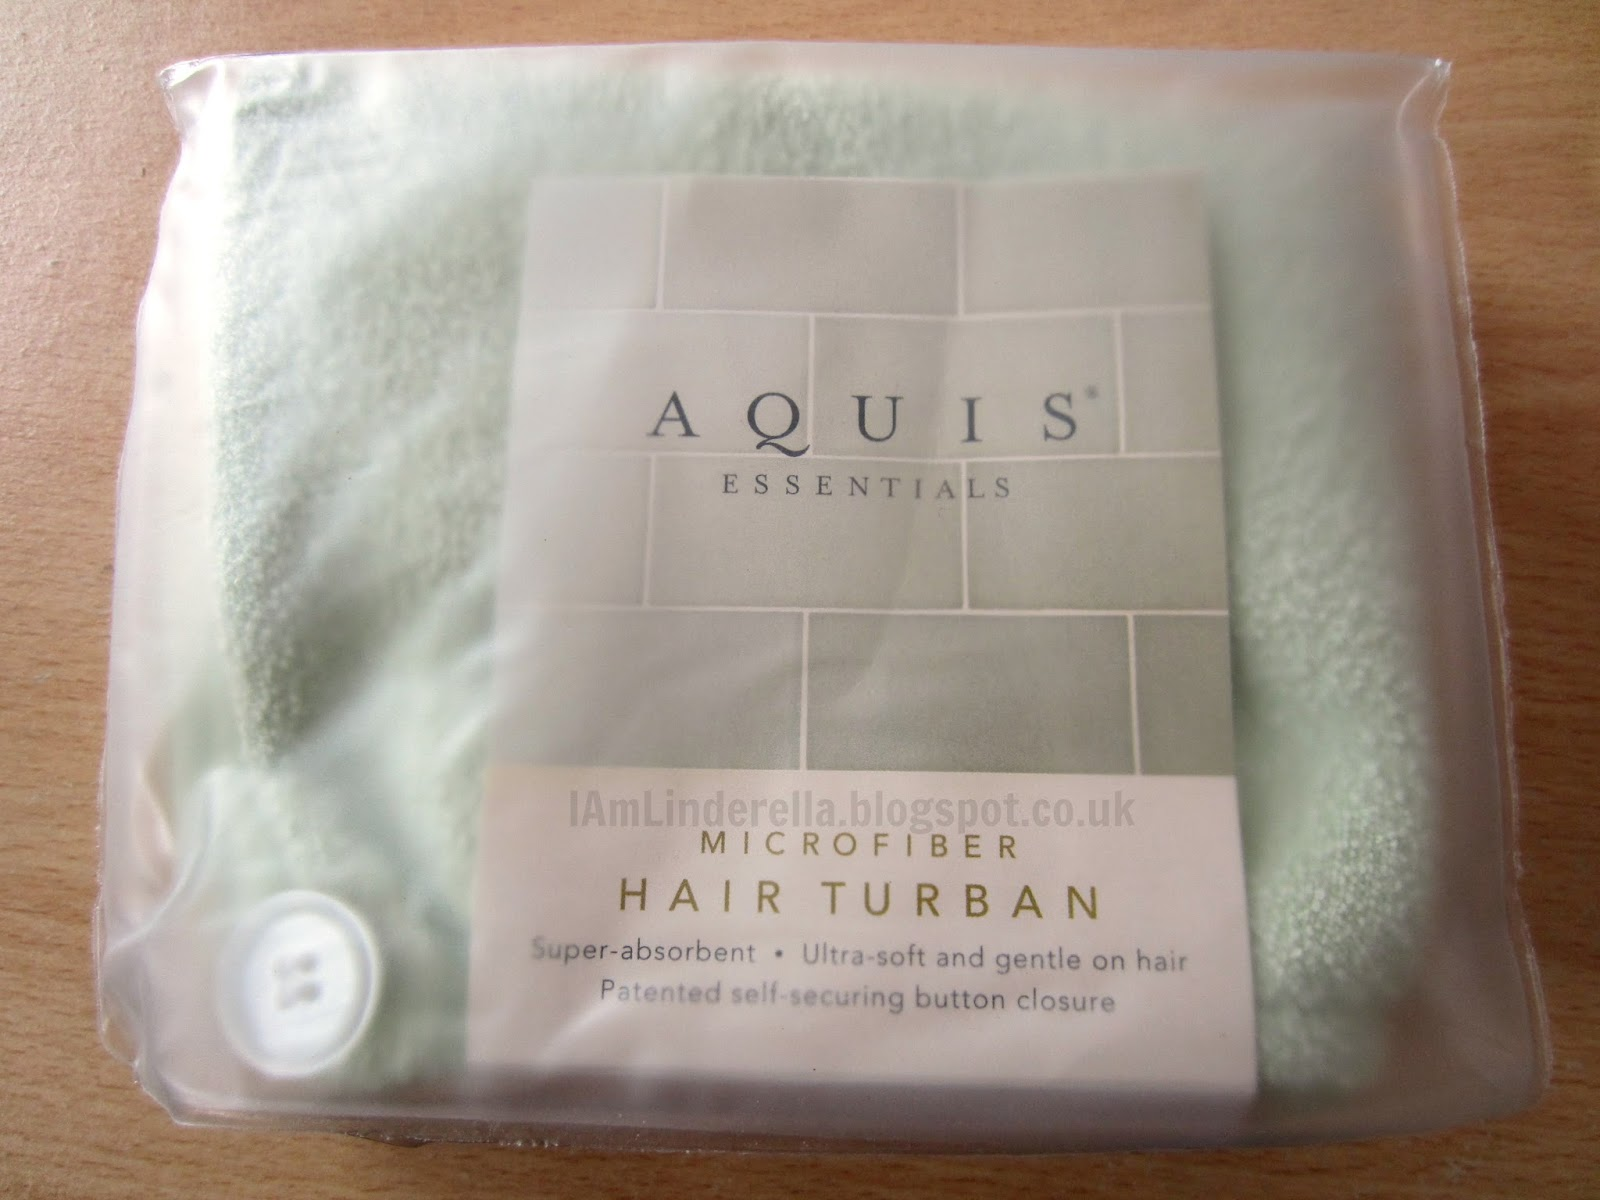 A Hair Turban Is The Shape Of Actual Towels Make It Doesn T Mean S Made From Any Diffe Material Only Difference Between And Regular